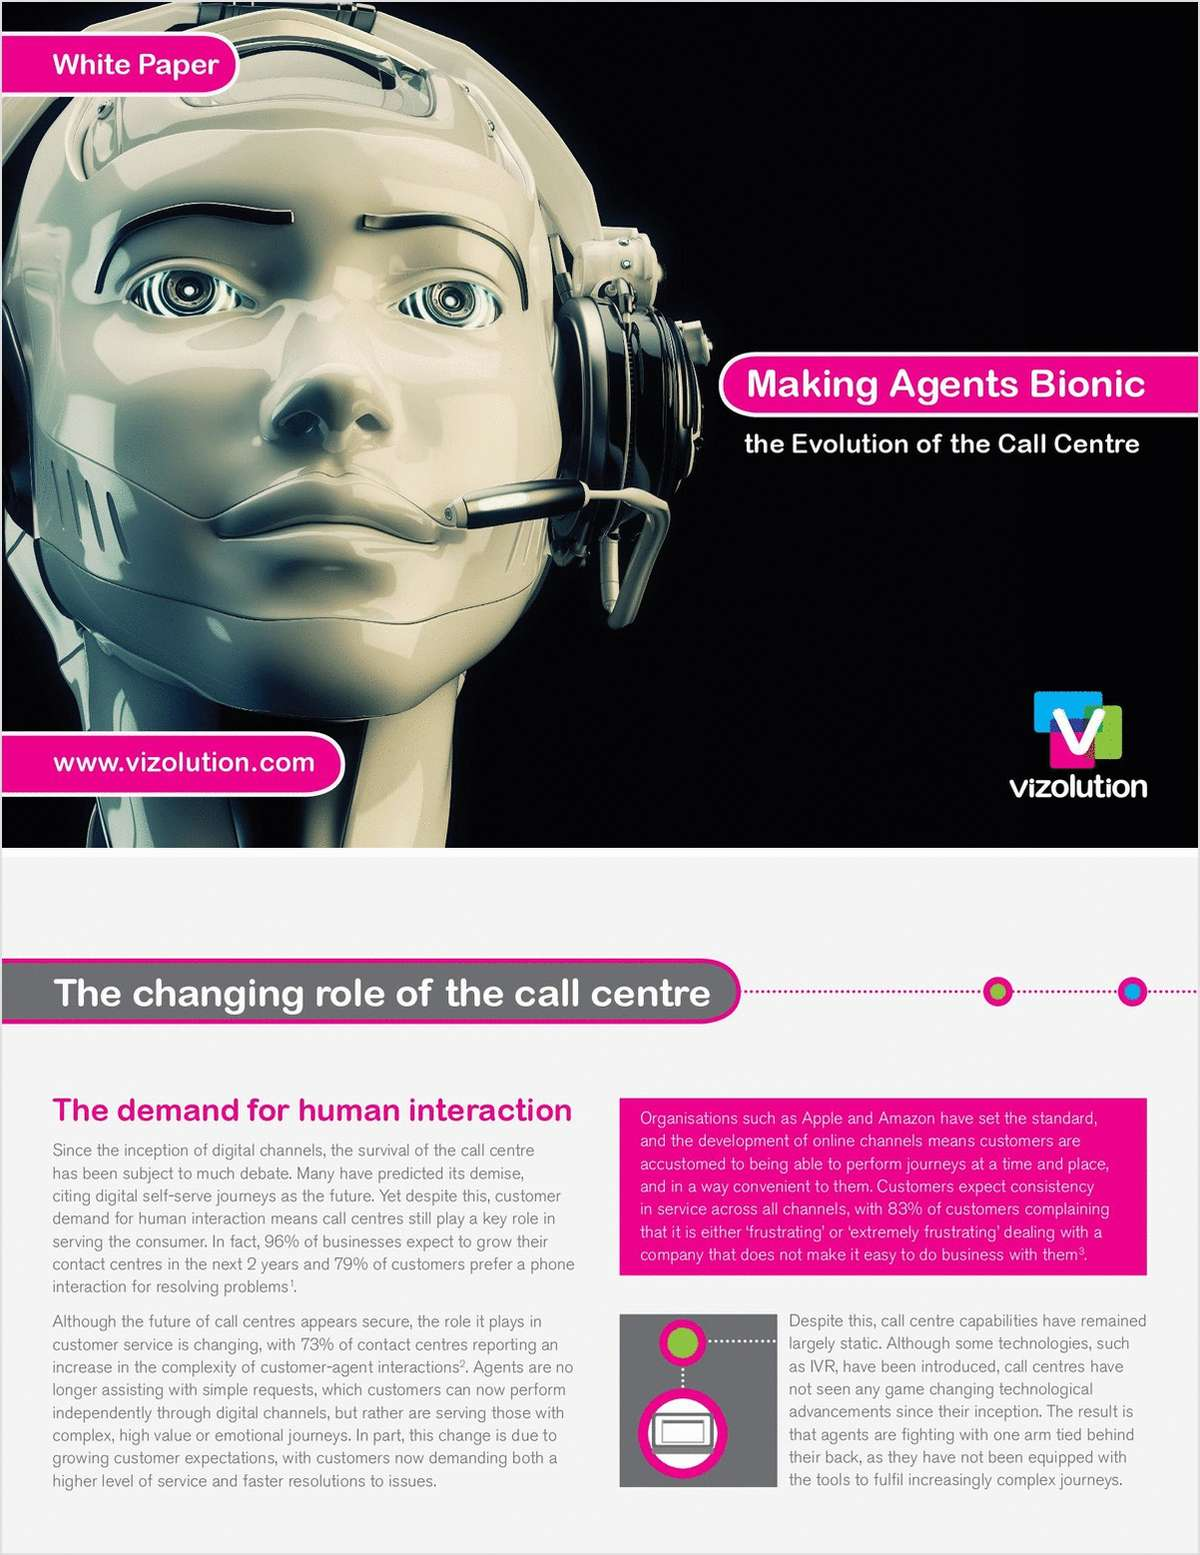 Making Agents Bionic - The Evolution of the Call Centre